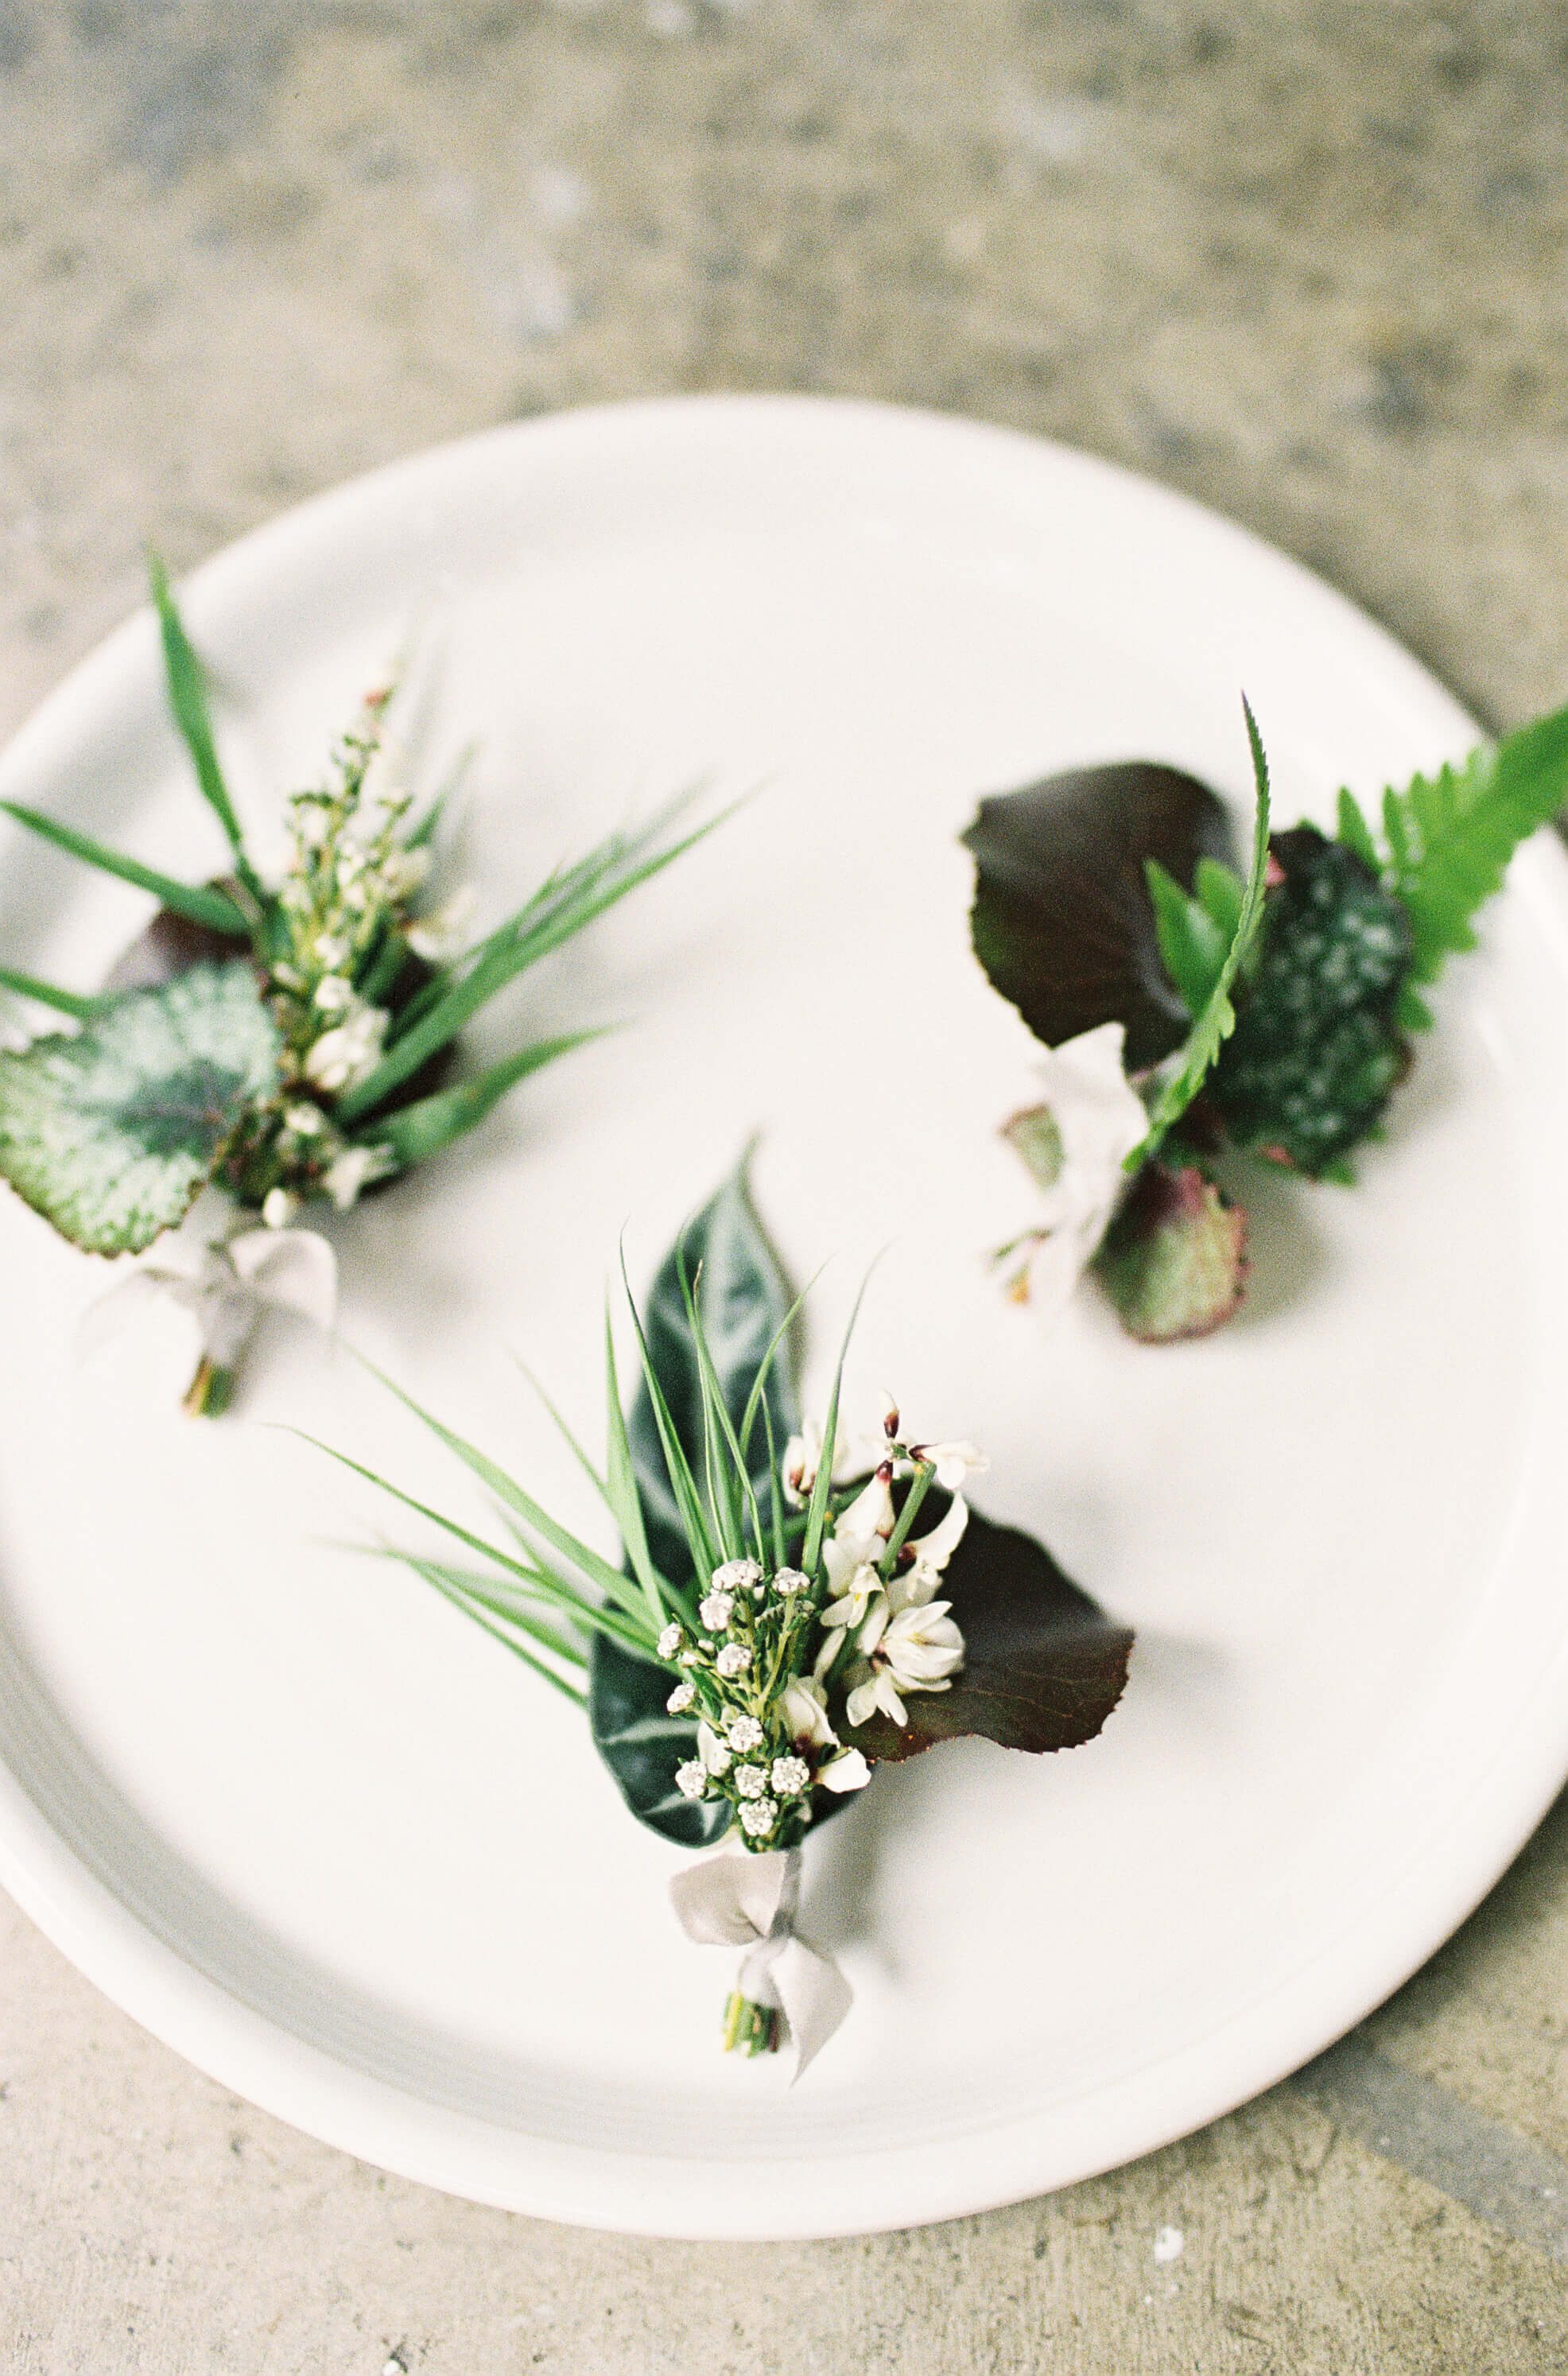 0.5 inch Dusty Miller for the boutonnières  As featured on   Once Wed    Photography   Maritha Mae  , Boutonnières   Bloomen